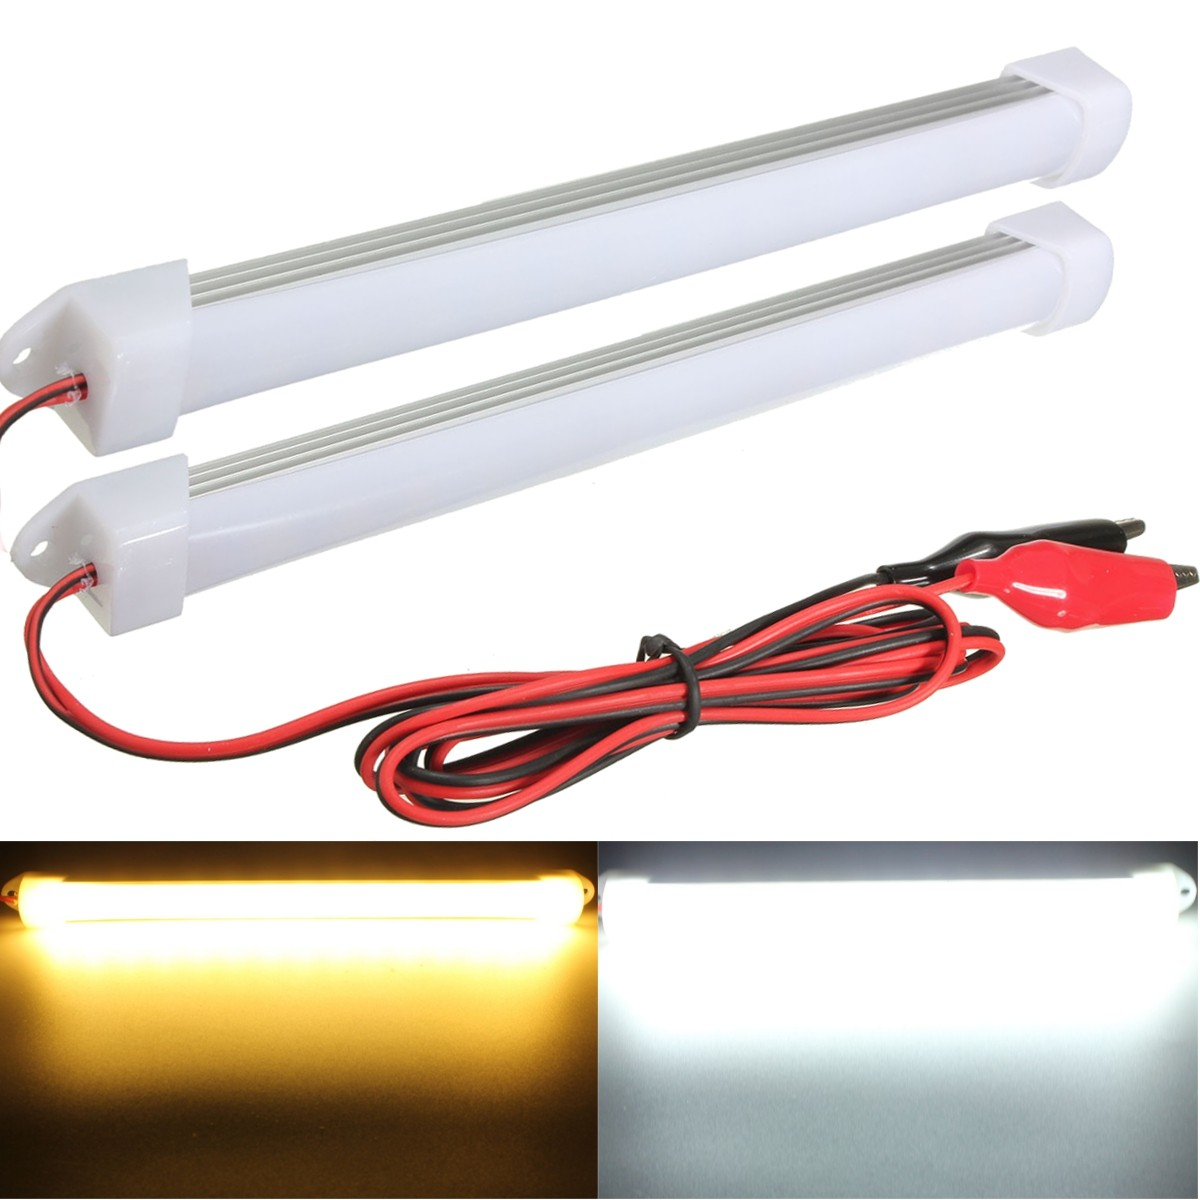 New 2PCS 12V LED Car Interior Light Bar Tube Strip Lamp Van Boat Caravan  Motorhome In Car Light Assembly From Automobiles U0026 Motorcycles On  Aliexpress.com ...